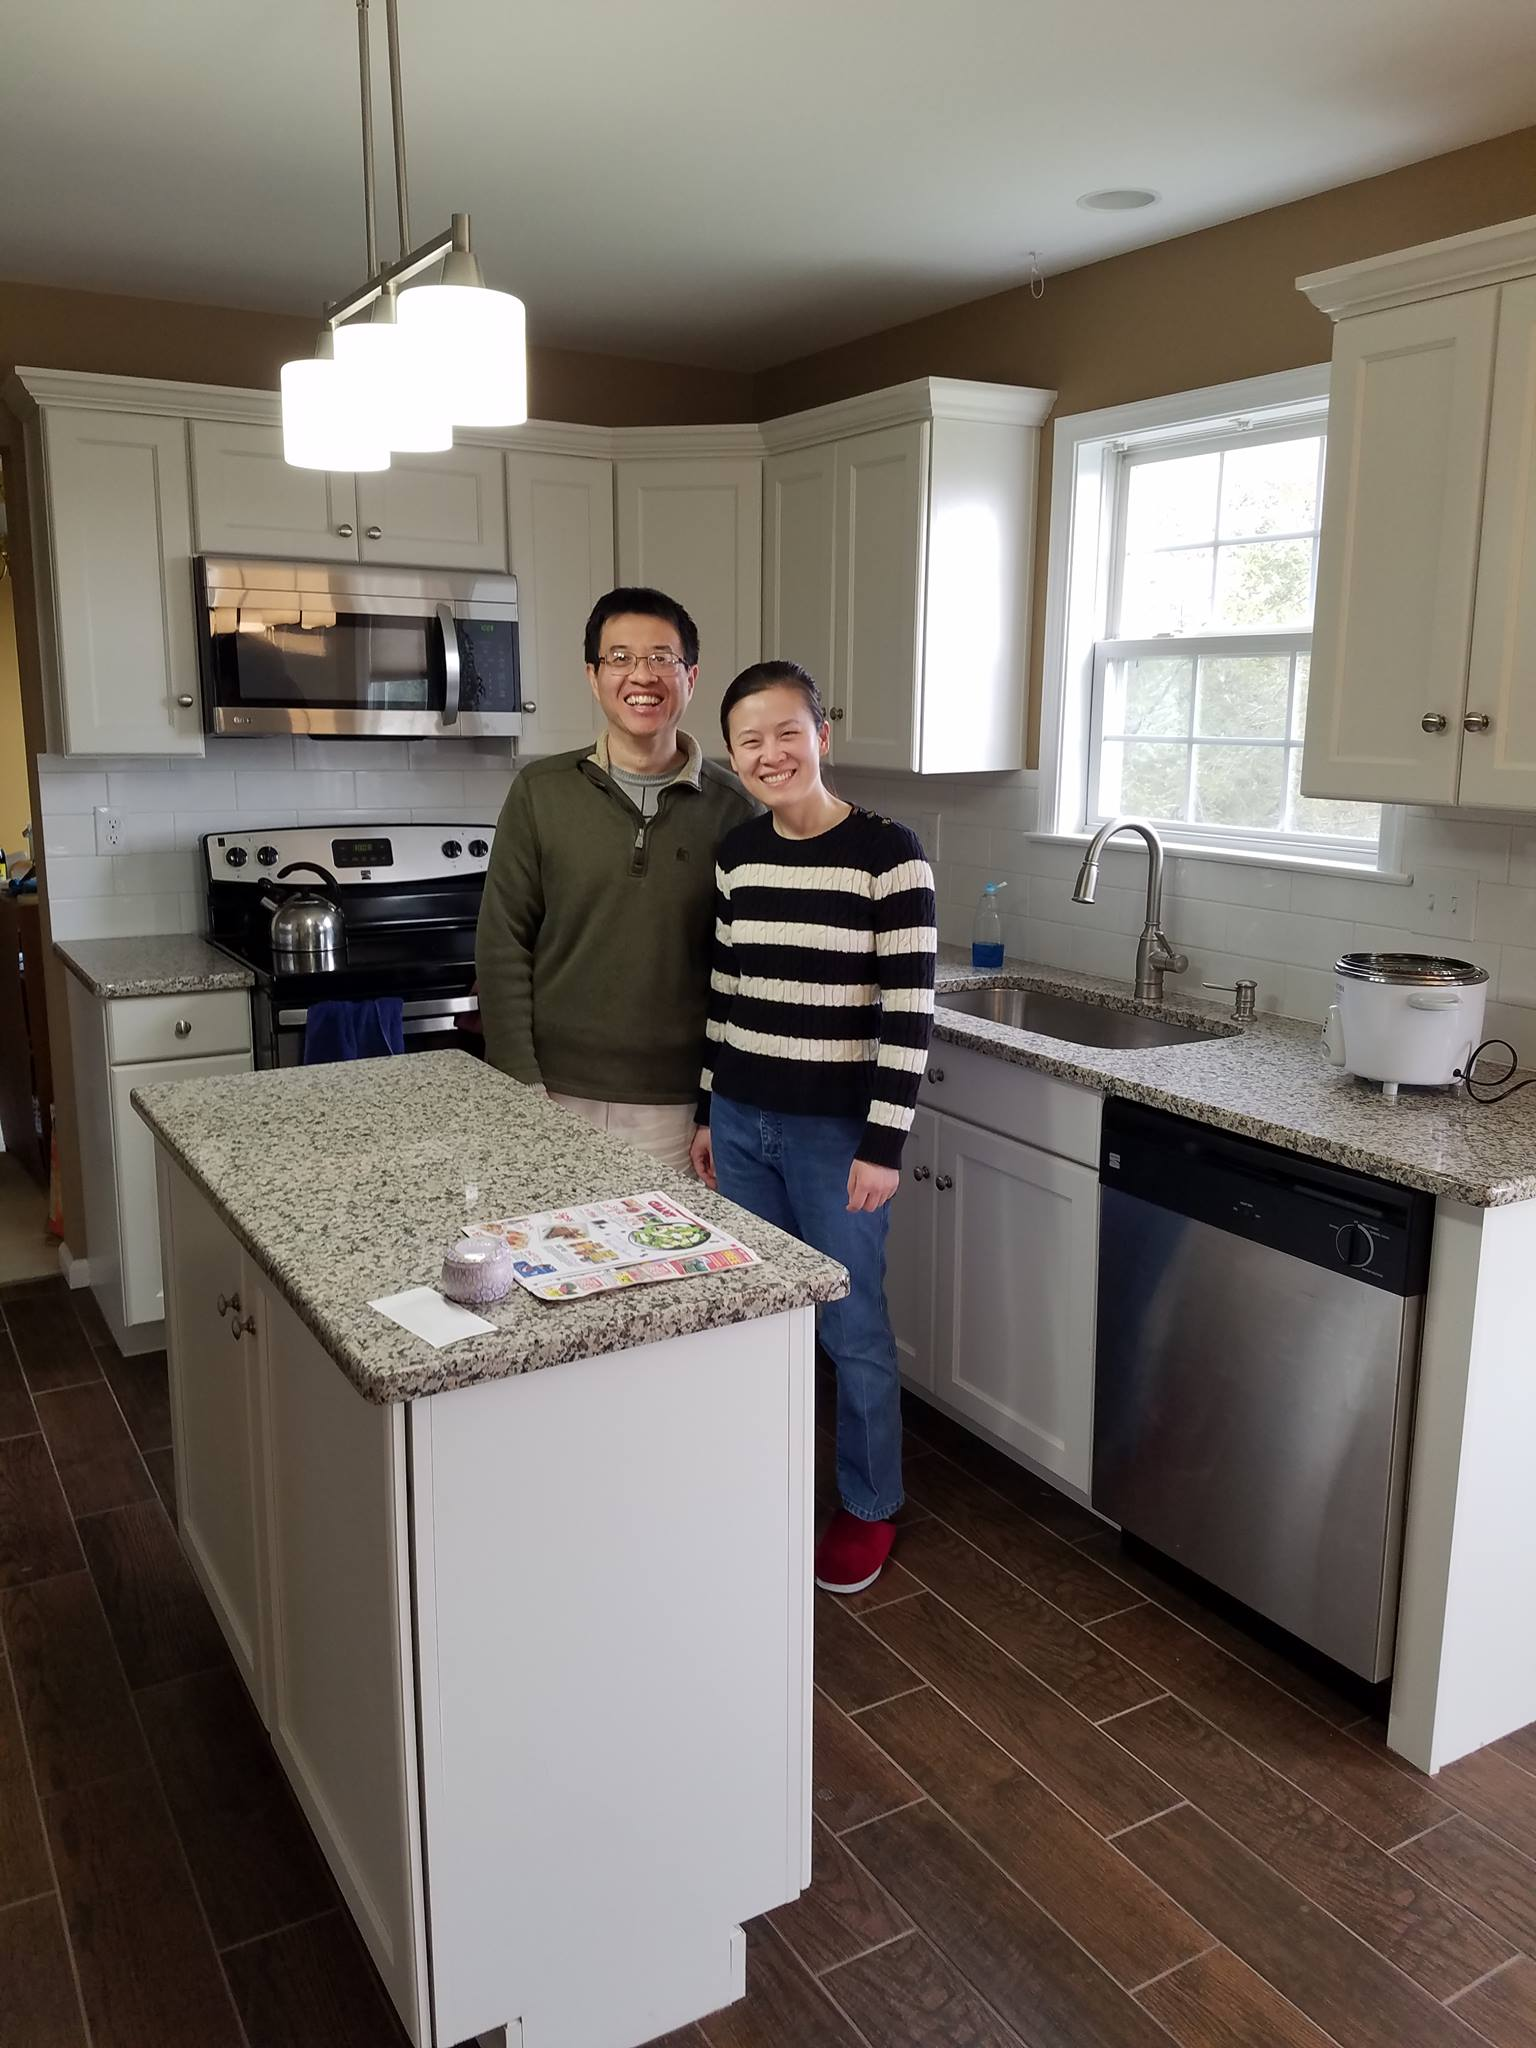 L&L Services remodeled this kitchen for a happy family in Berks County PA.